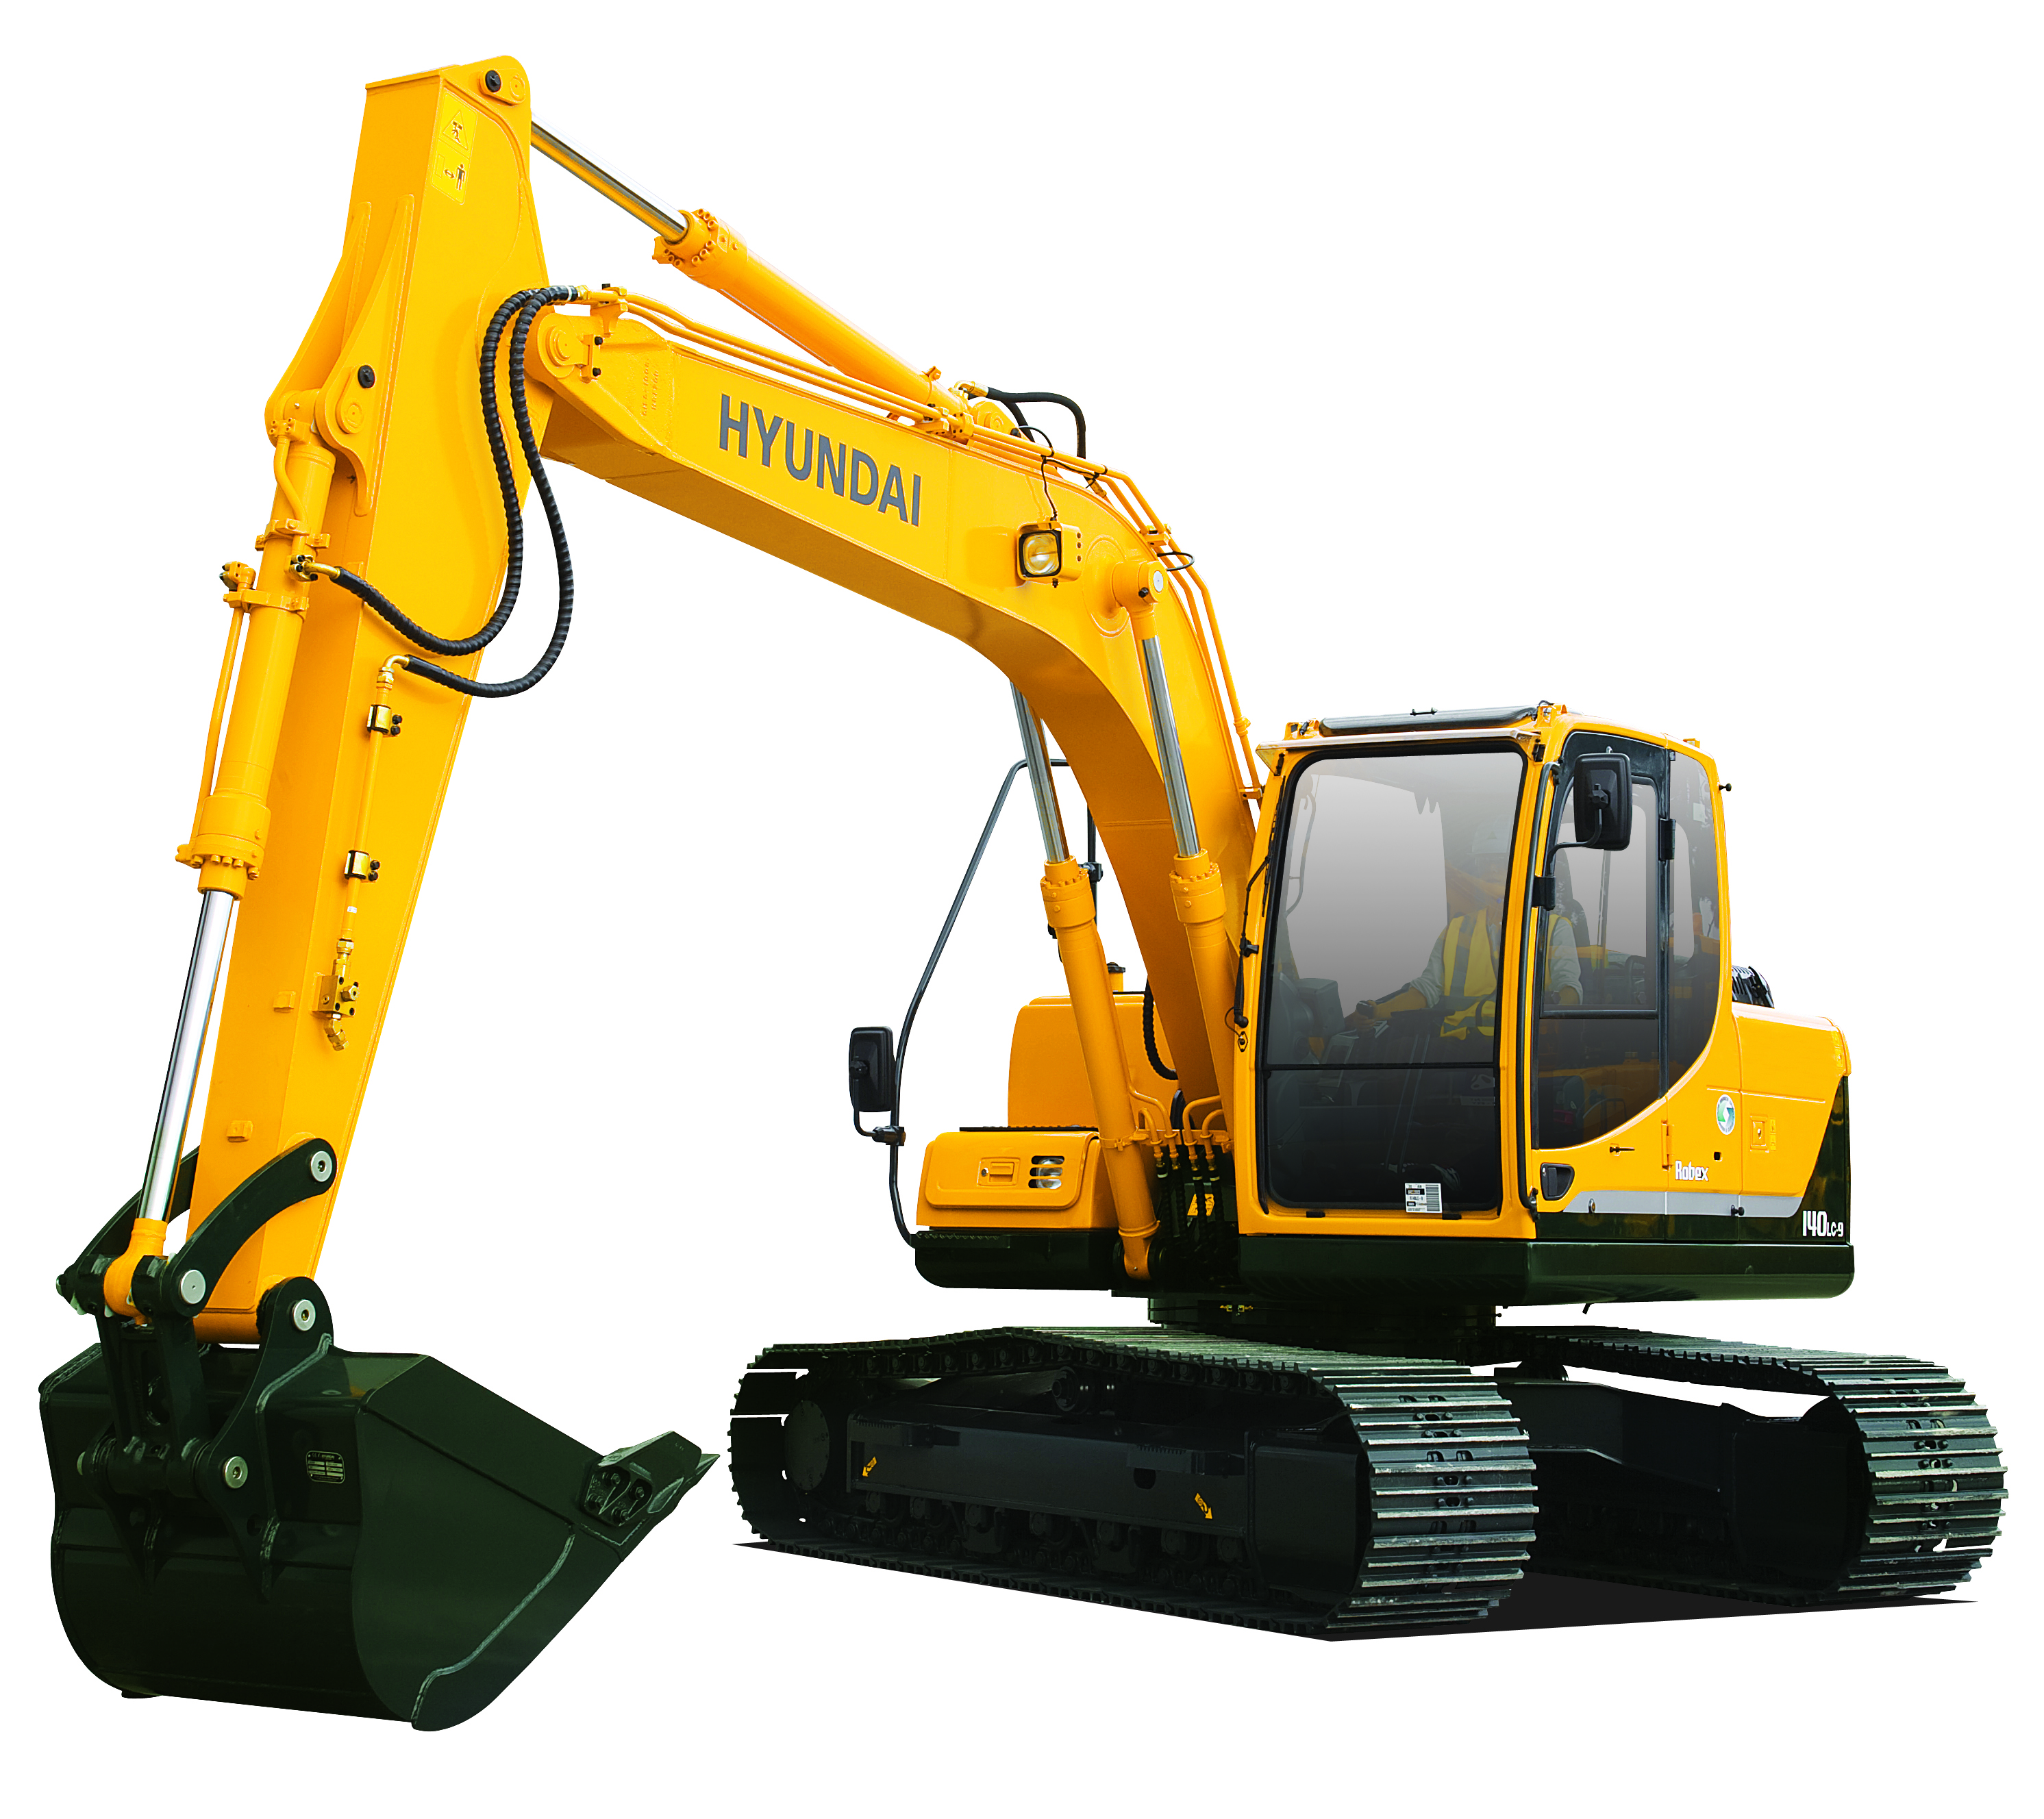 Backhoe clipart construction machinery. Equipment panda free images